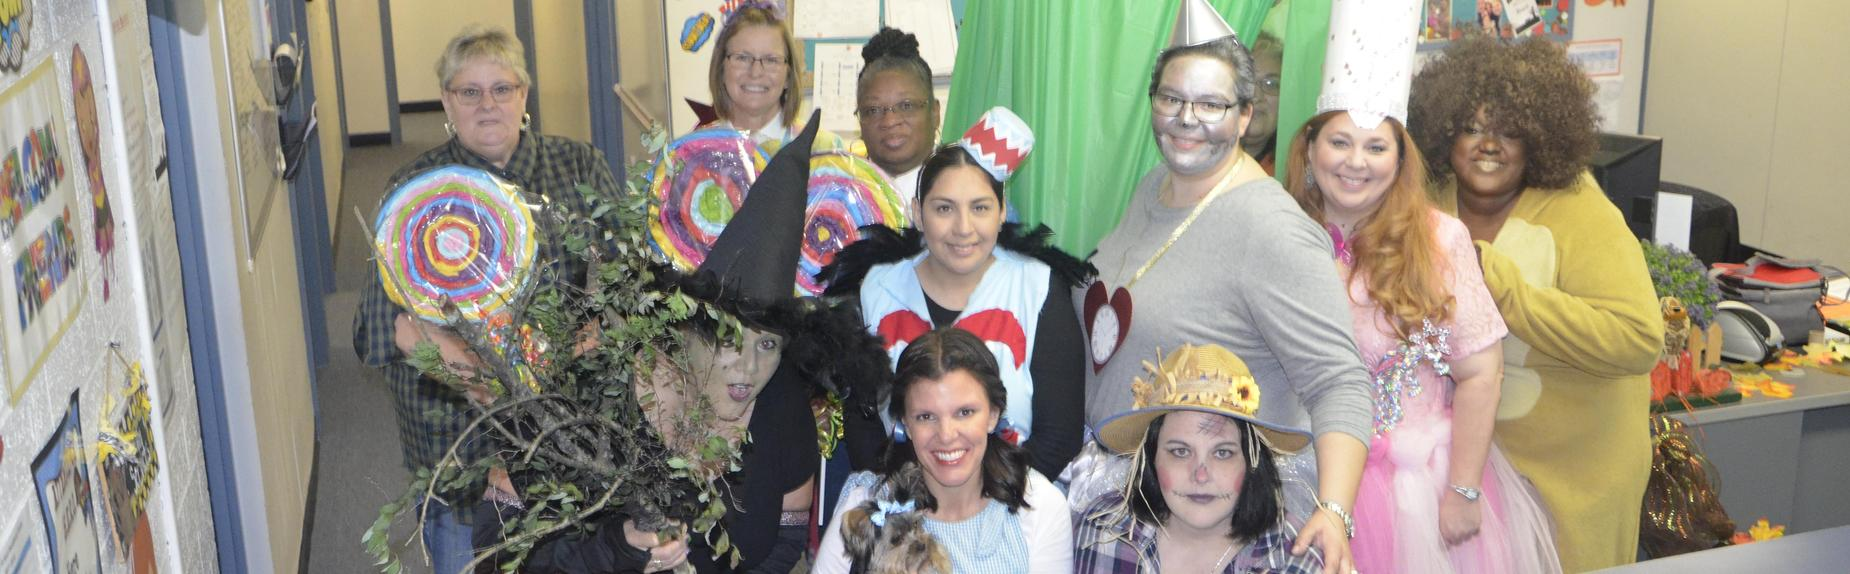 North Early Learning Center staff welcomed students and families to the Land of Oz at the Fall Festival!